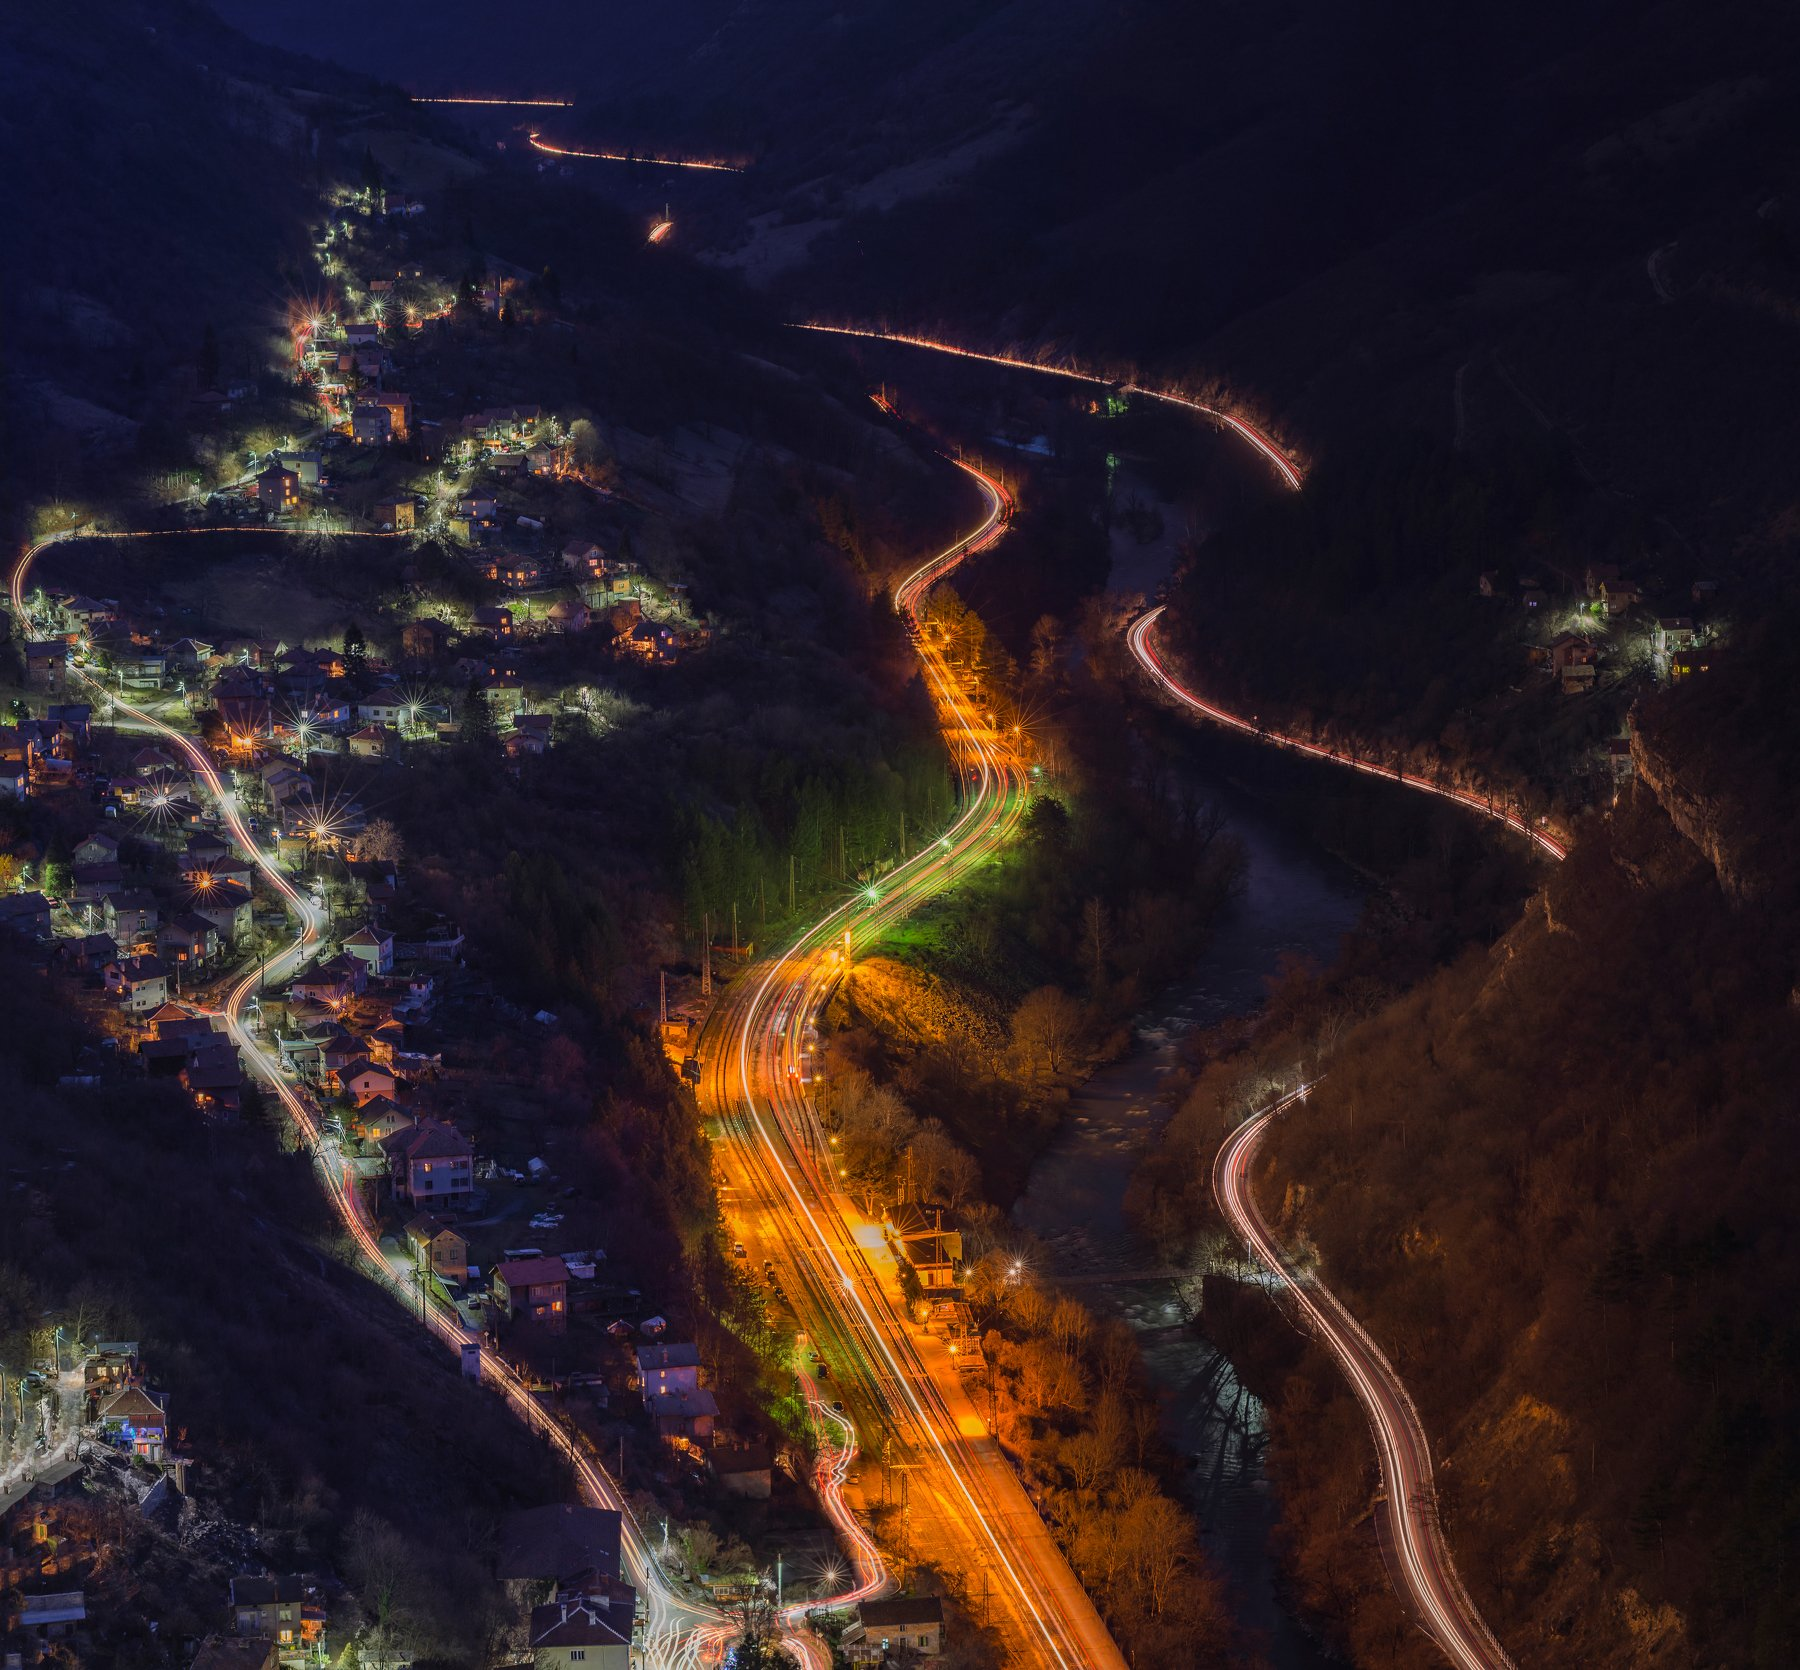 night, trails, cars, train, landscape, mountain, river, water, city, Иван Димитров